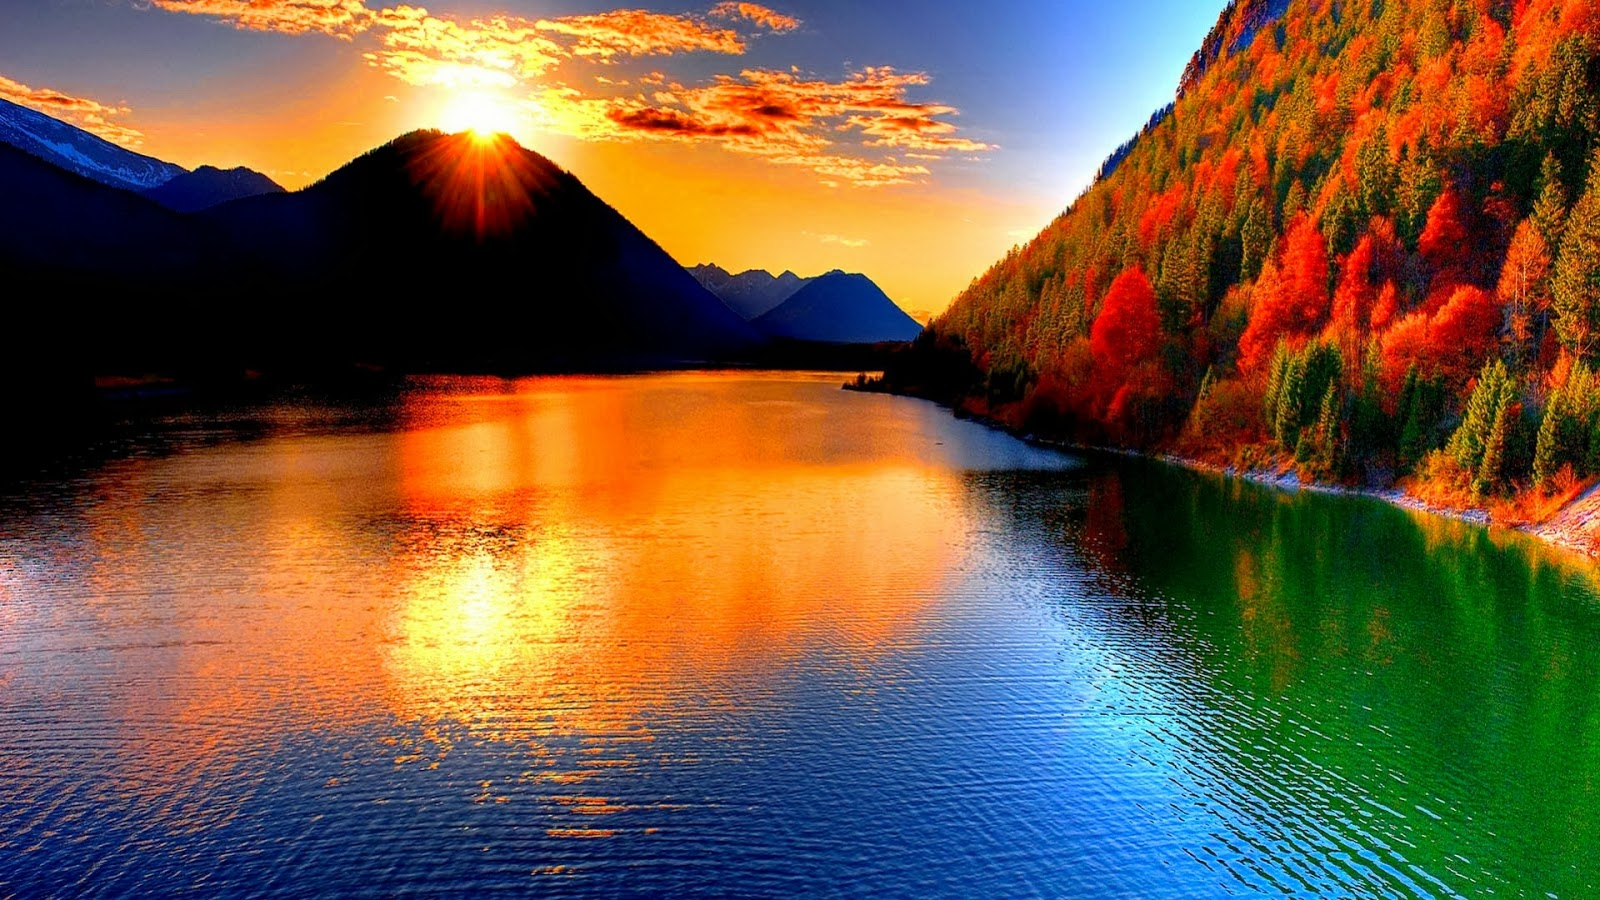 nature wallpapers hd free download,natural landscape,nature,sky,reflection,mountain